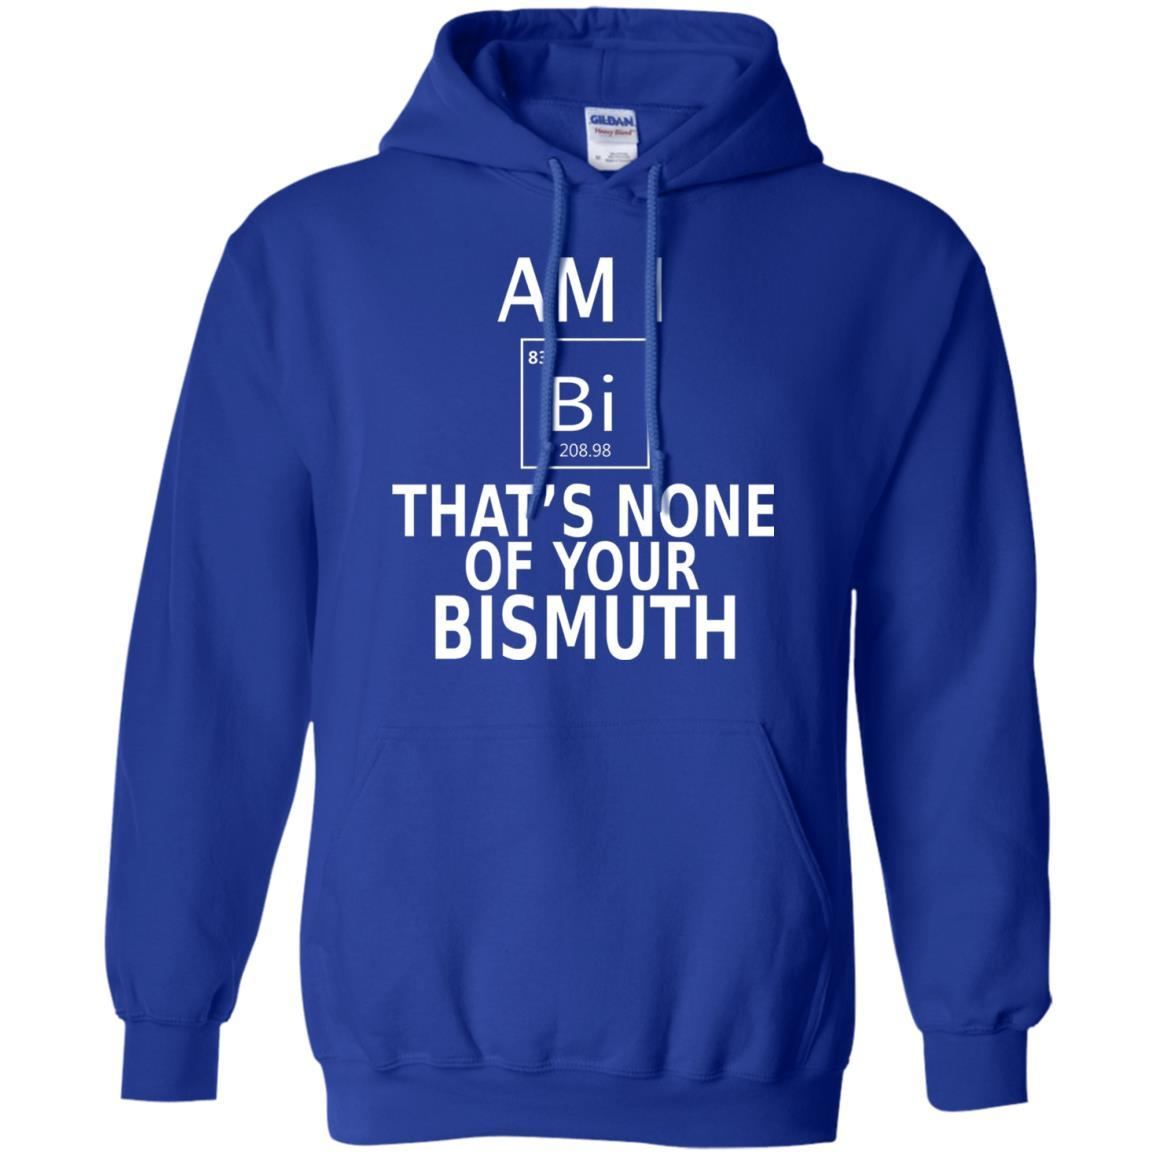 Am I Bi That's None of your Bismuth, Bisexual Pride T-Shirt